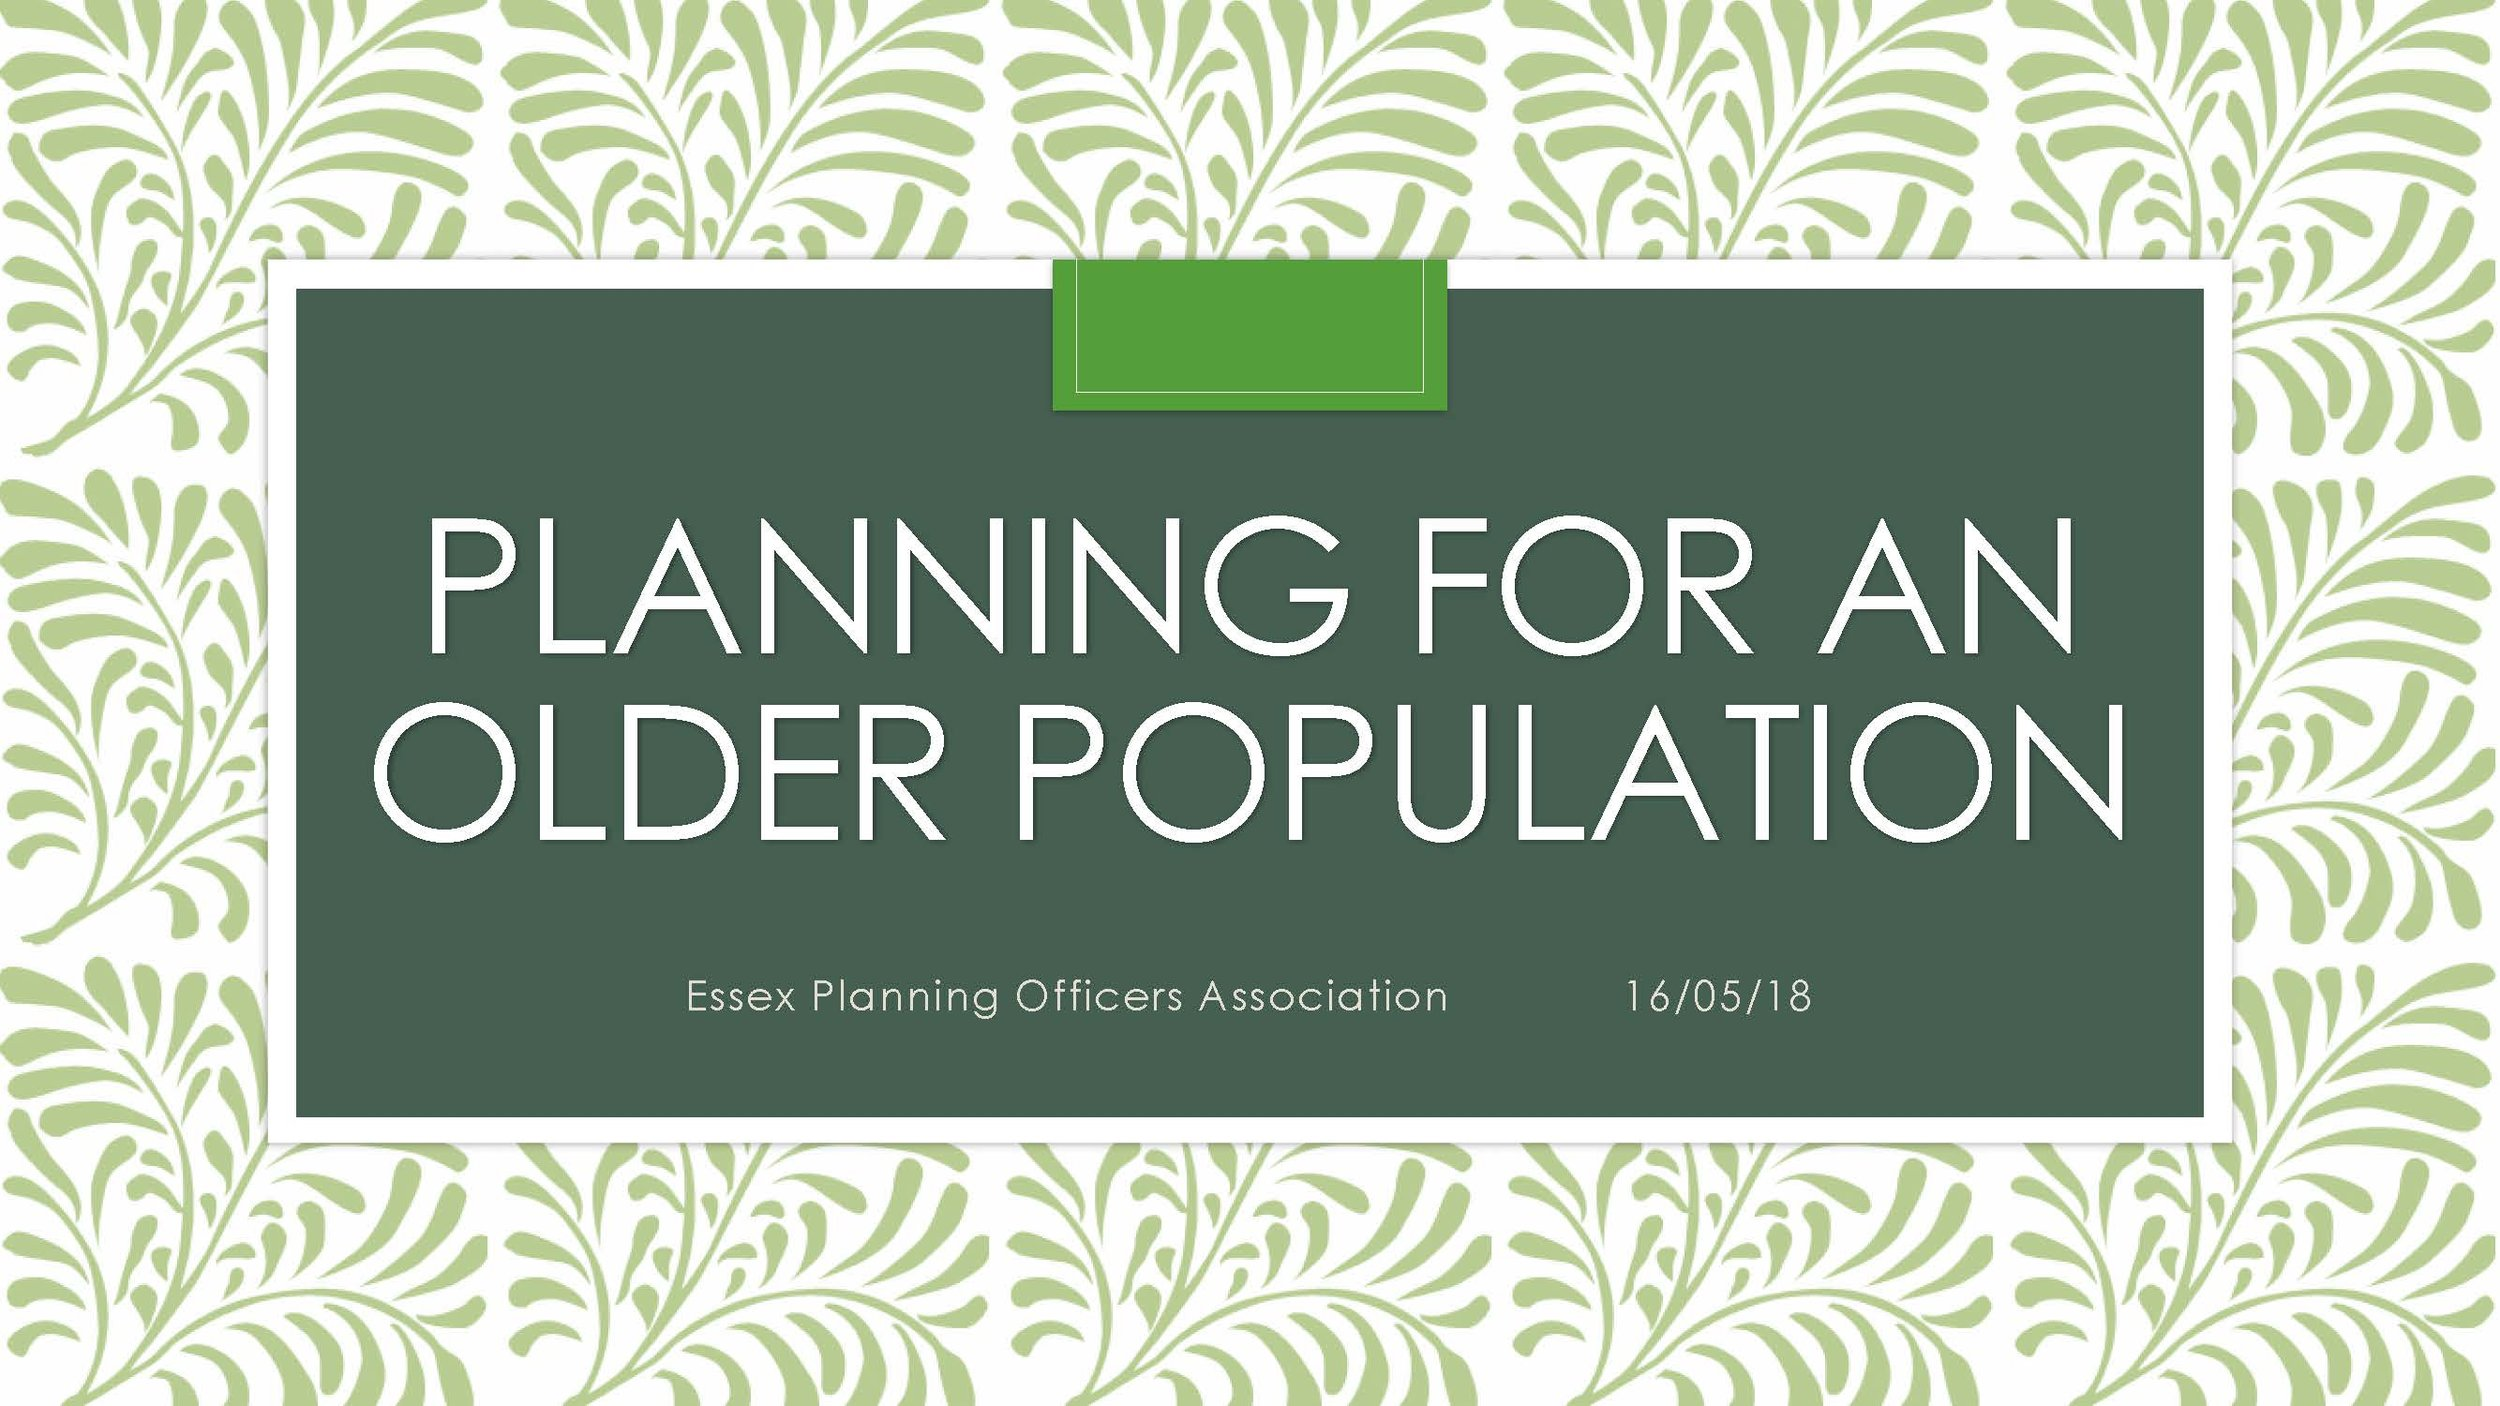 Planning for an Older Population Talk